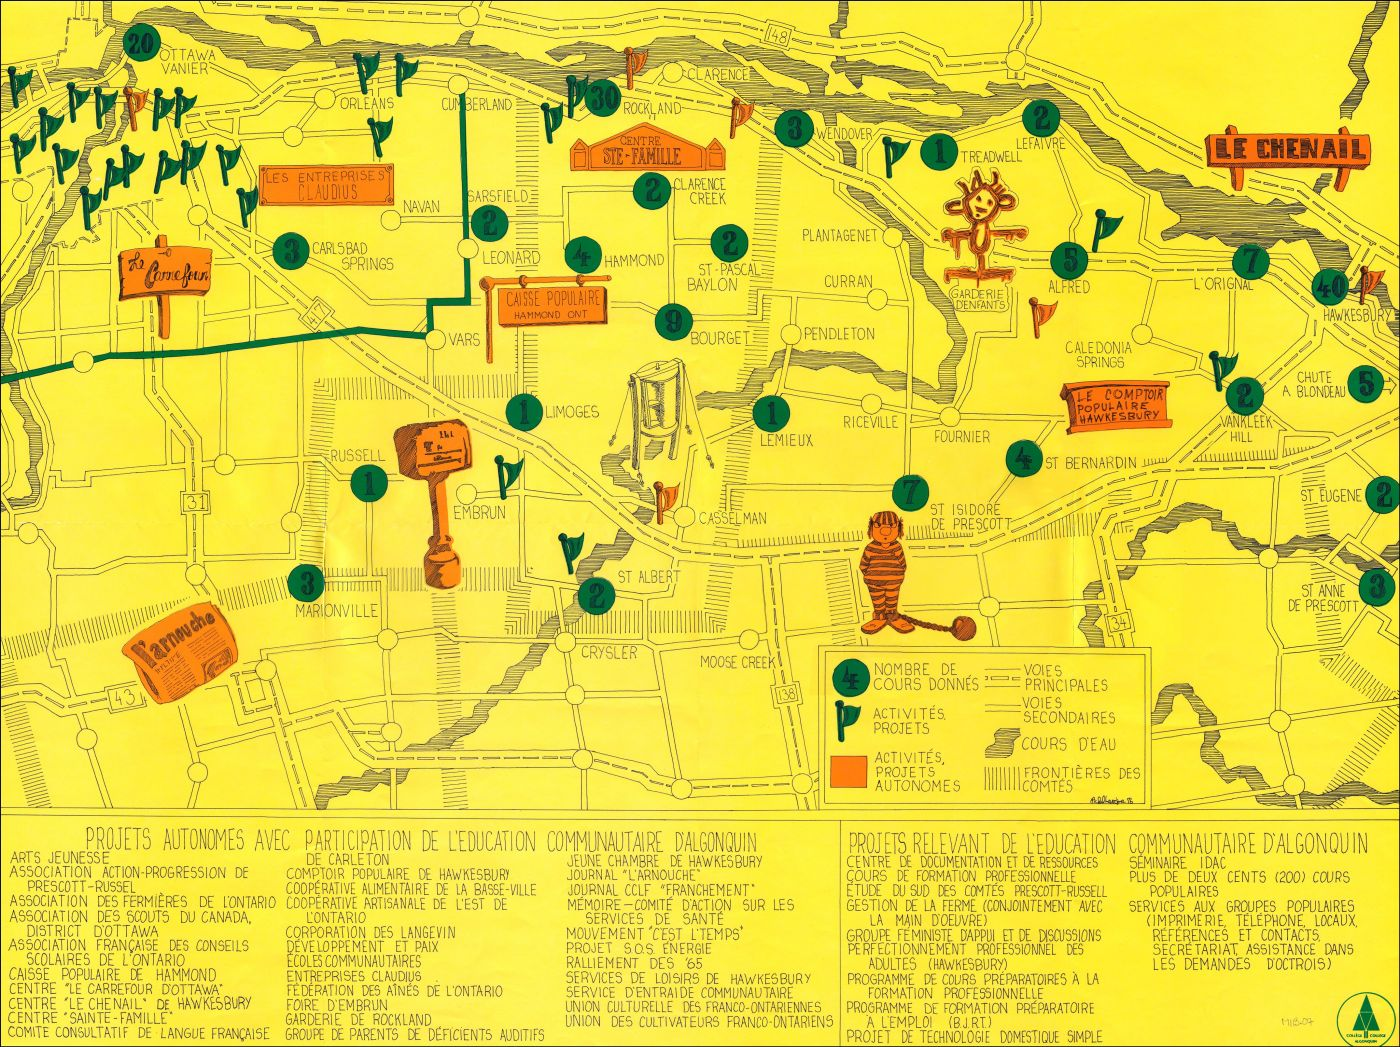 """"""" A schematic map in French. Fine black lines on a yellow background represent the road network and the main communities in eastern Ontario, including Ottawa. Coloured symbols mark the sites of intervention by the """"éducation communautaire d'Algonquin"""" program. A detailed list of projects appears at the bottom of the map."""""""